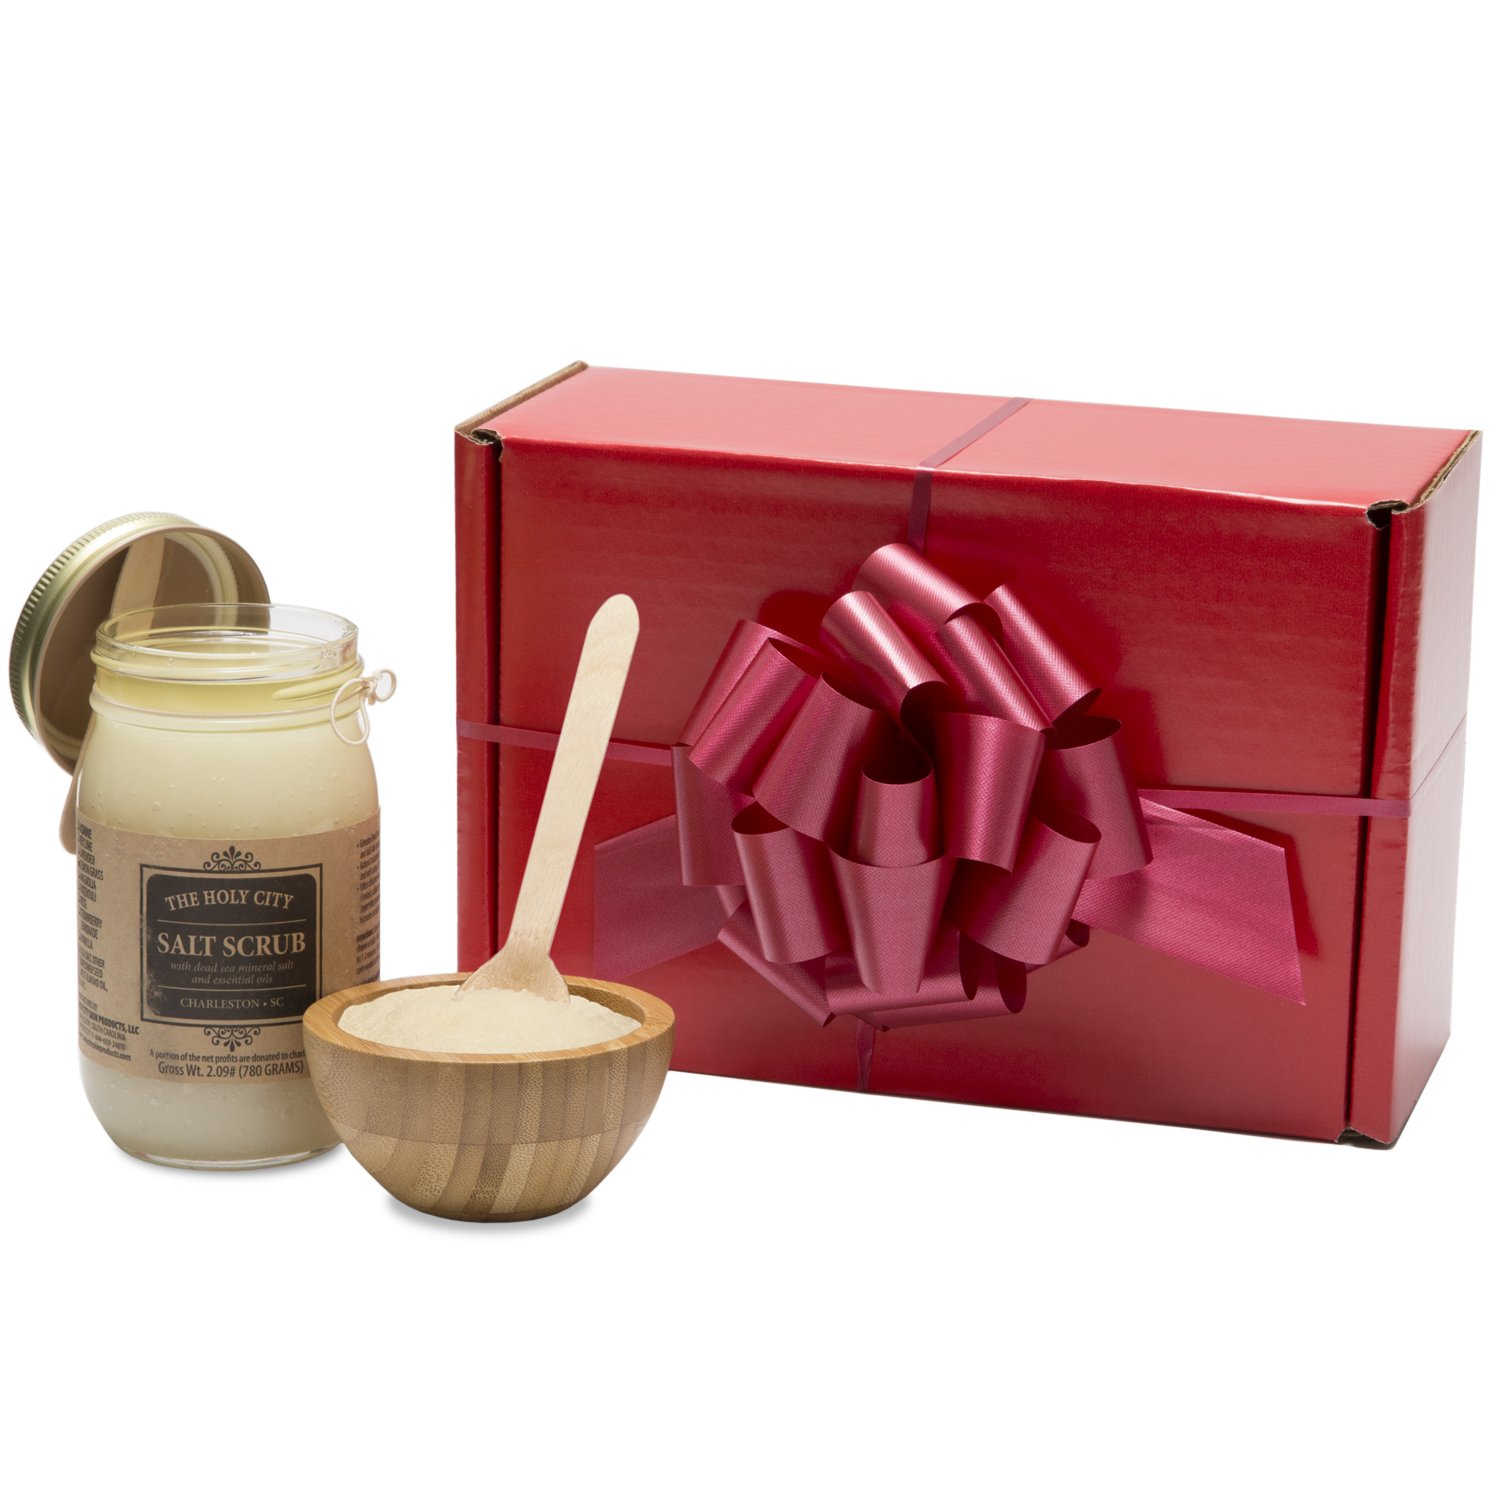 Gift Box Set - Holy City Skin Products Revitalizing Dead Sea Salt Hand and Body Scrub Gift Set with Wooden Bowl (Lavender)